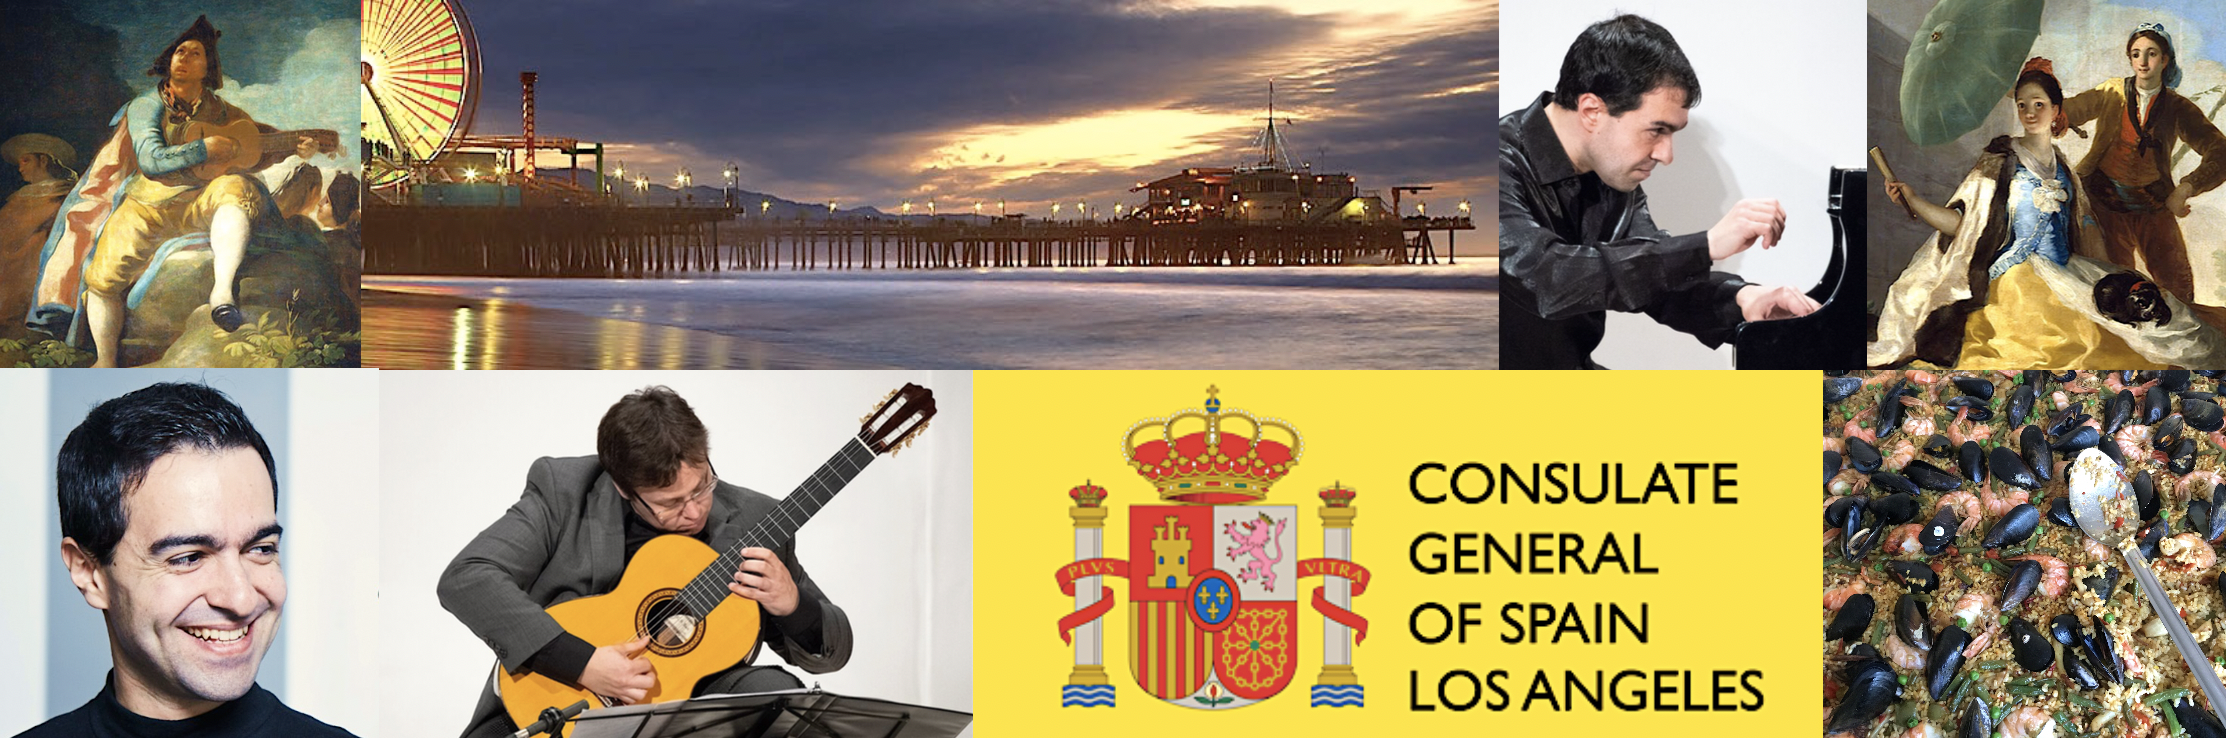 Goyescas by the sea banner. clockwise from bottom left: josè menor; painting of man with guitar, shot of santa monica pier at sunset; mr. menor playing piano; painting of couple with cat and umbrella; paella; consulate general of spain los angeles logo.